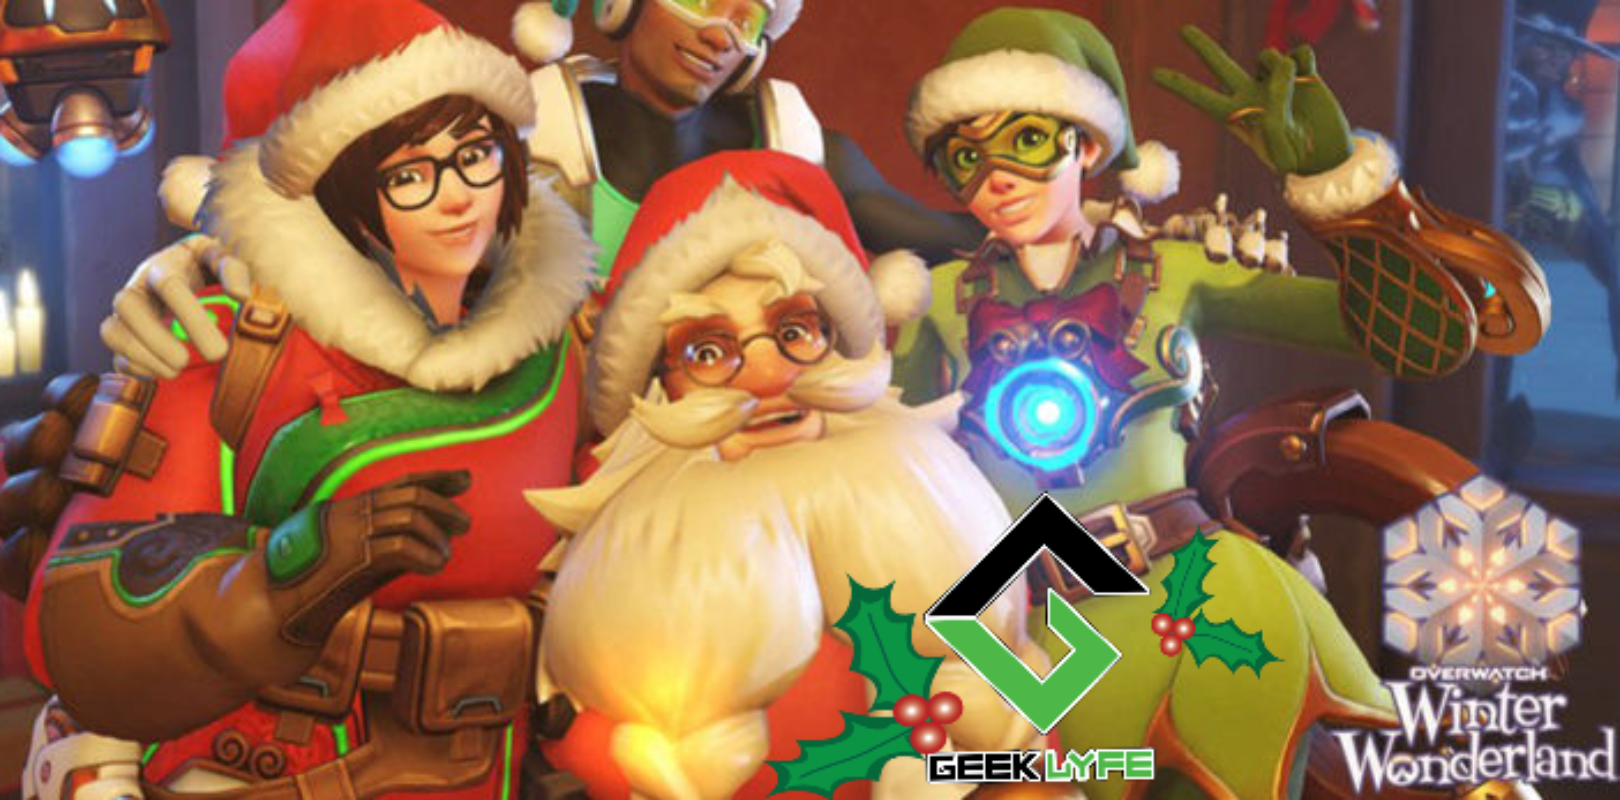 Overwatch Christmas.Overwatch Christmas Loot Boxes The Quest For The